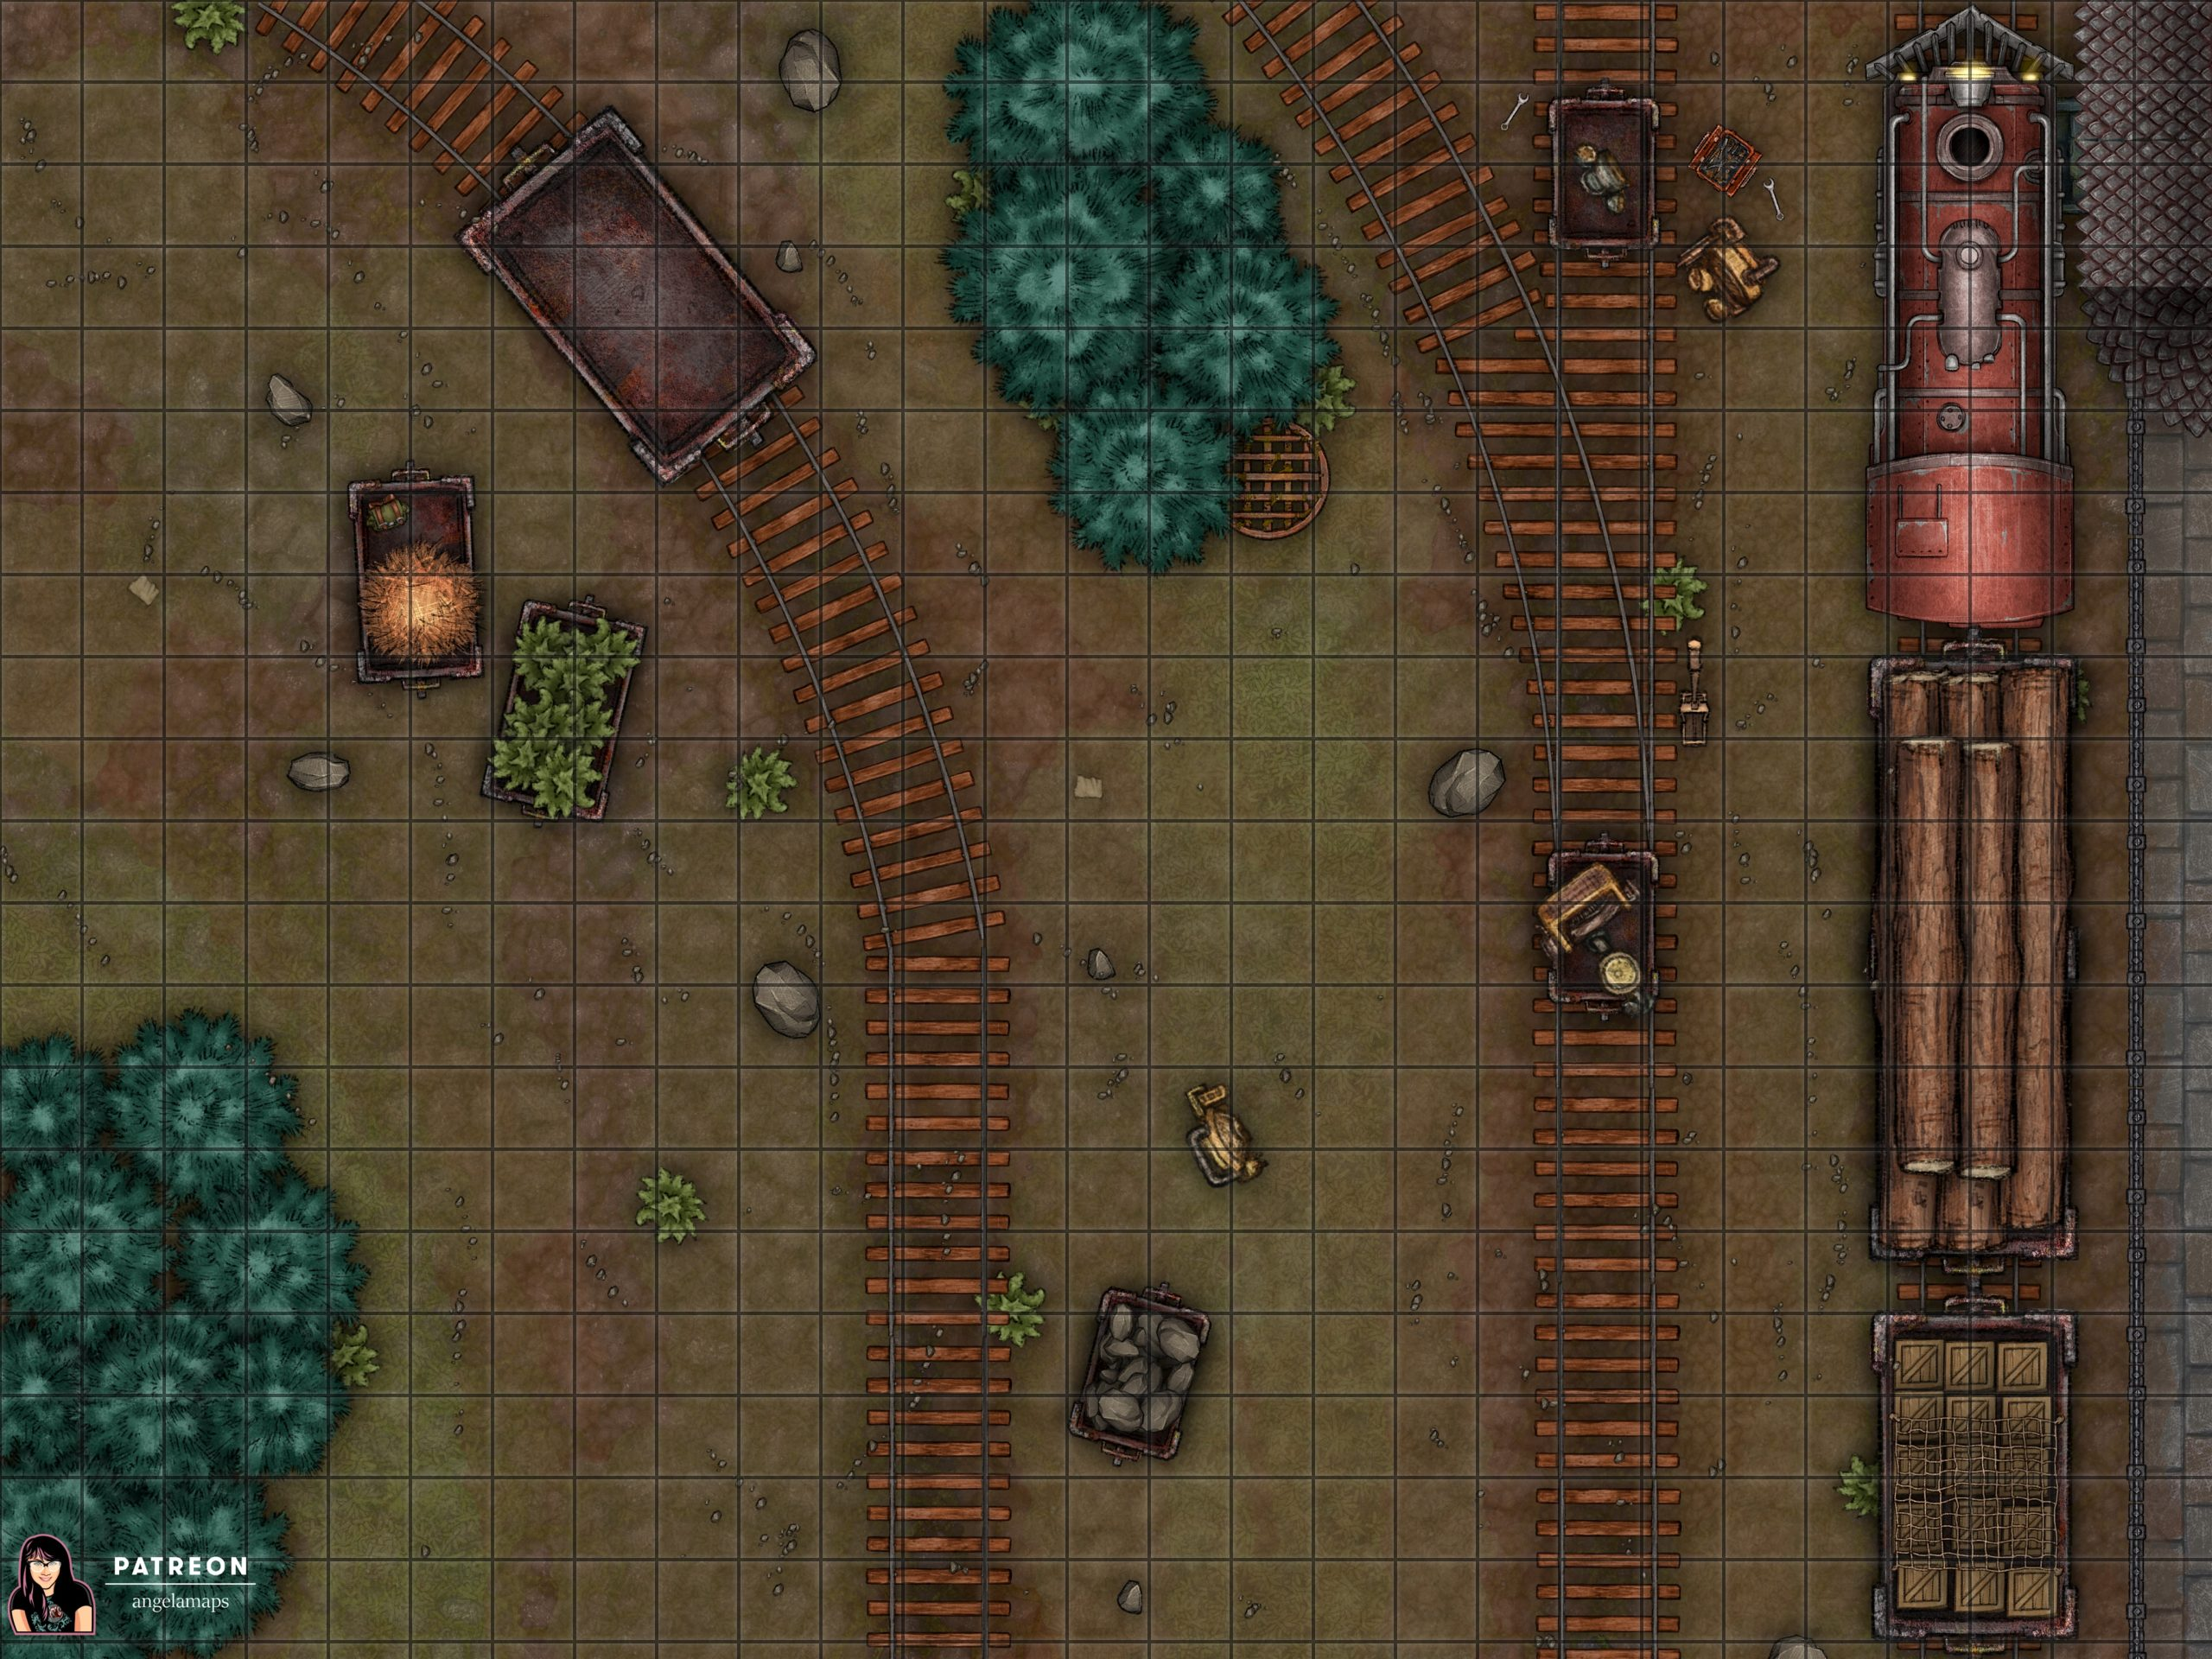 Train station battle map encounter for D&D and pathfinder TTRPGs